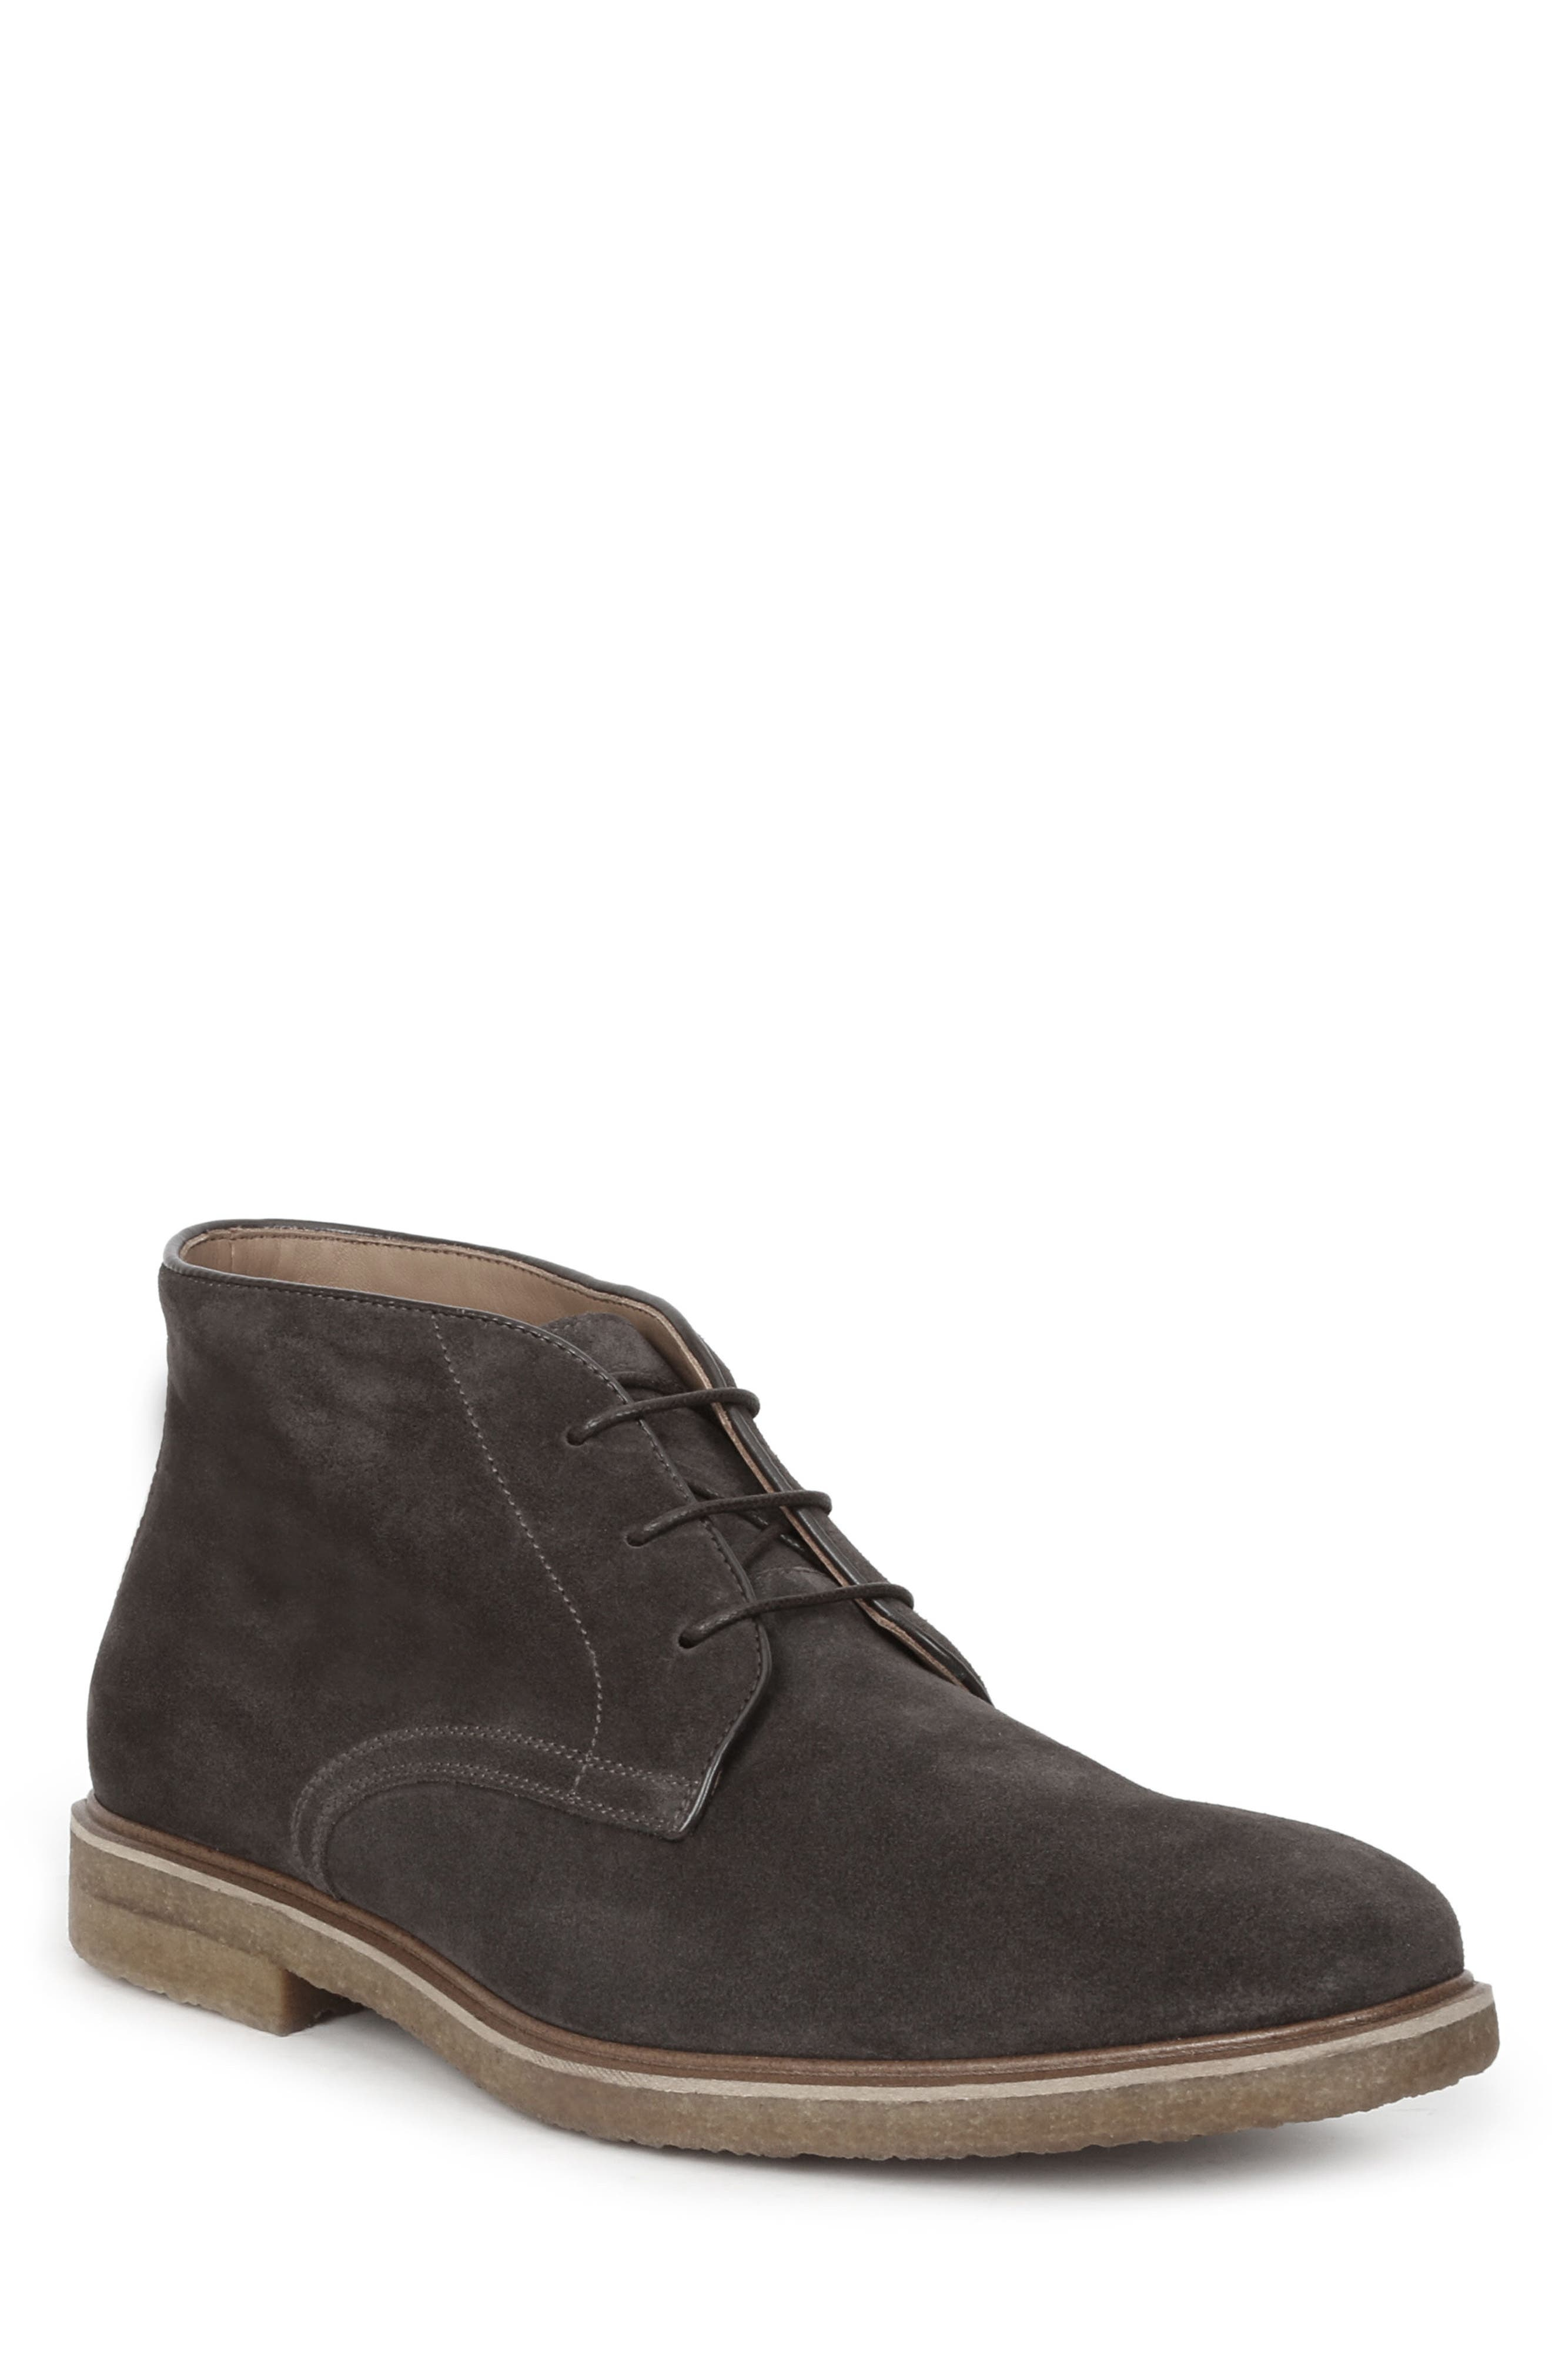 Chavez Chukka Boot,                         Main,                         color,